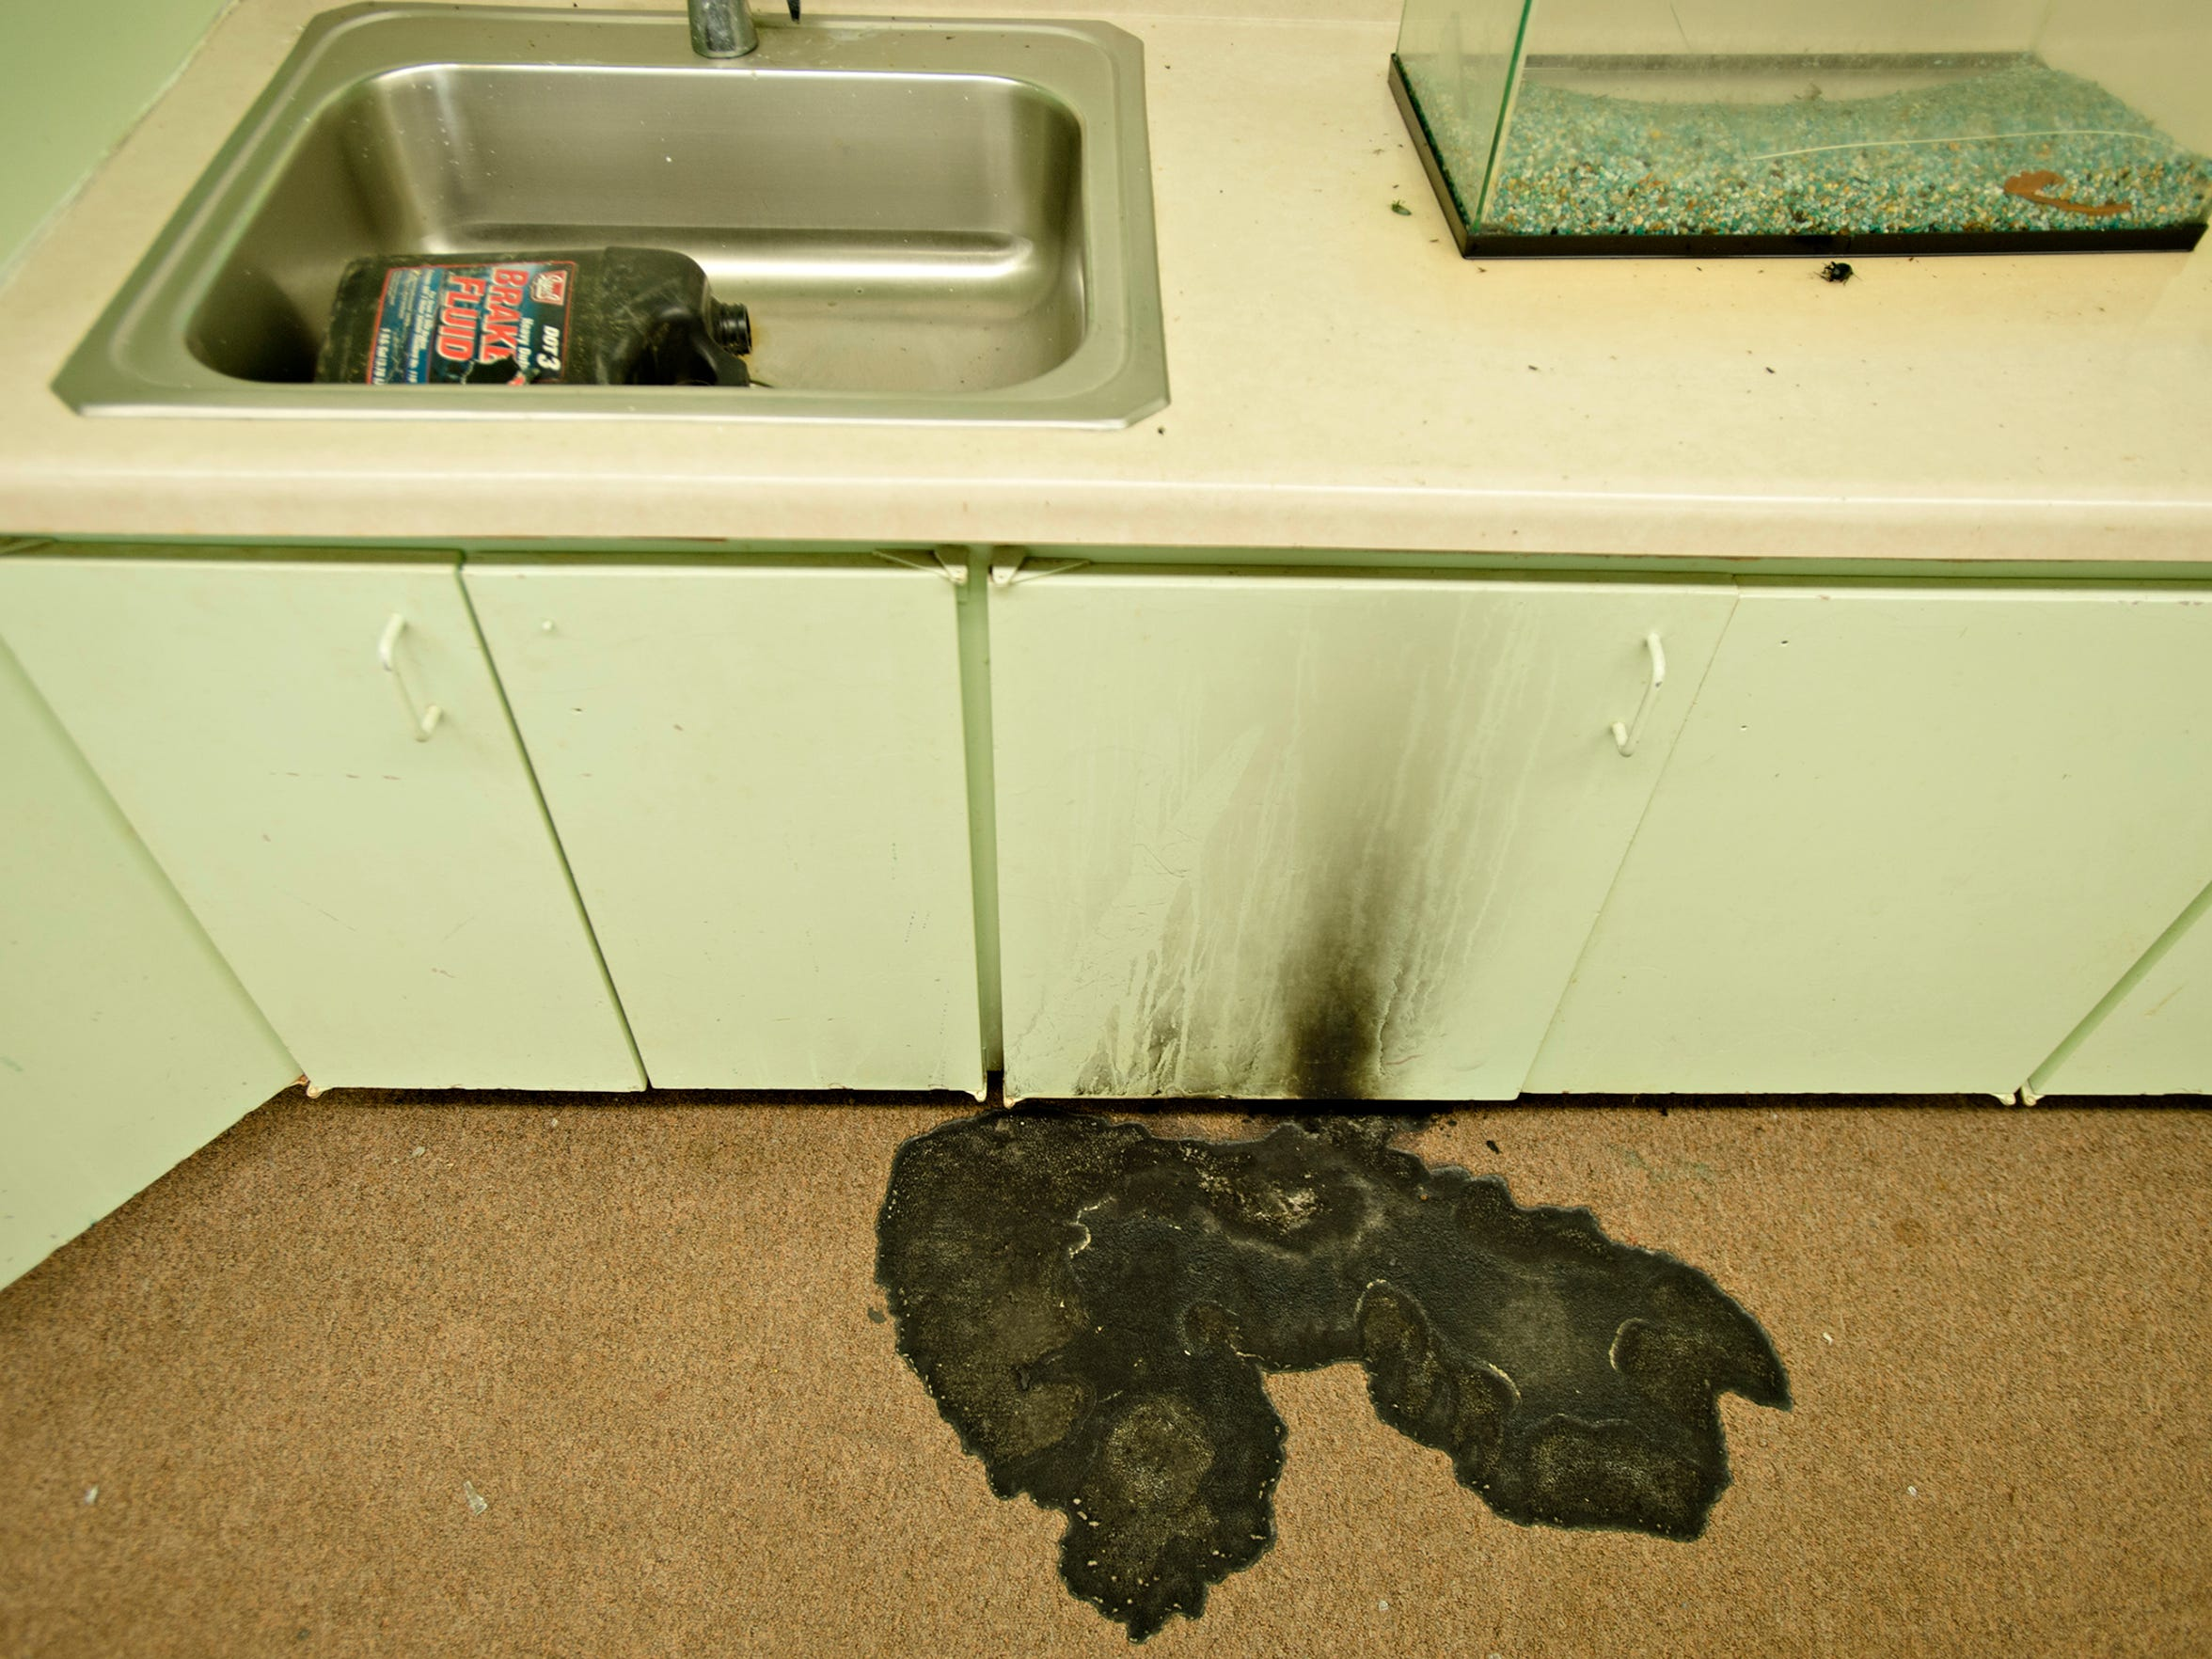 Burned carpet from an arson attempt from mid-summer